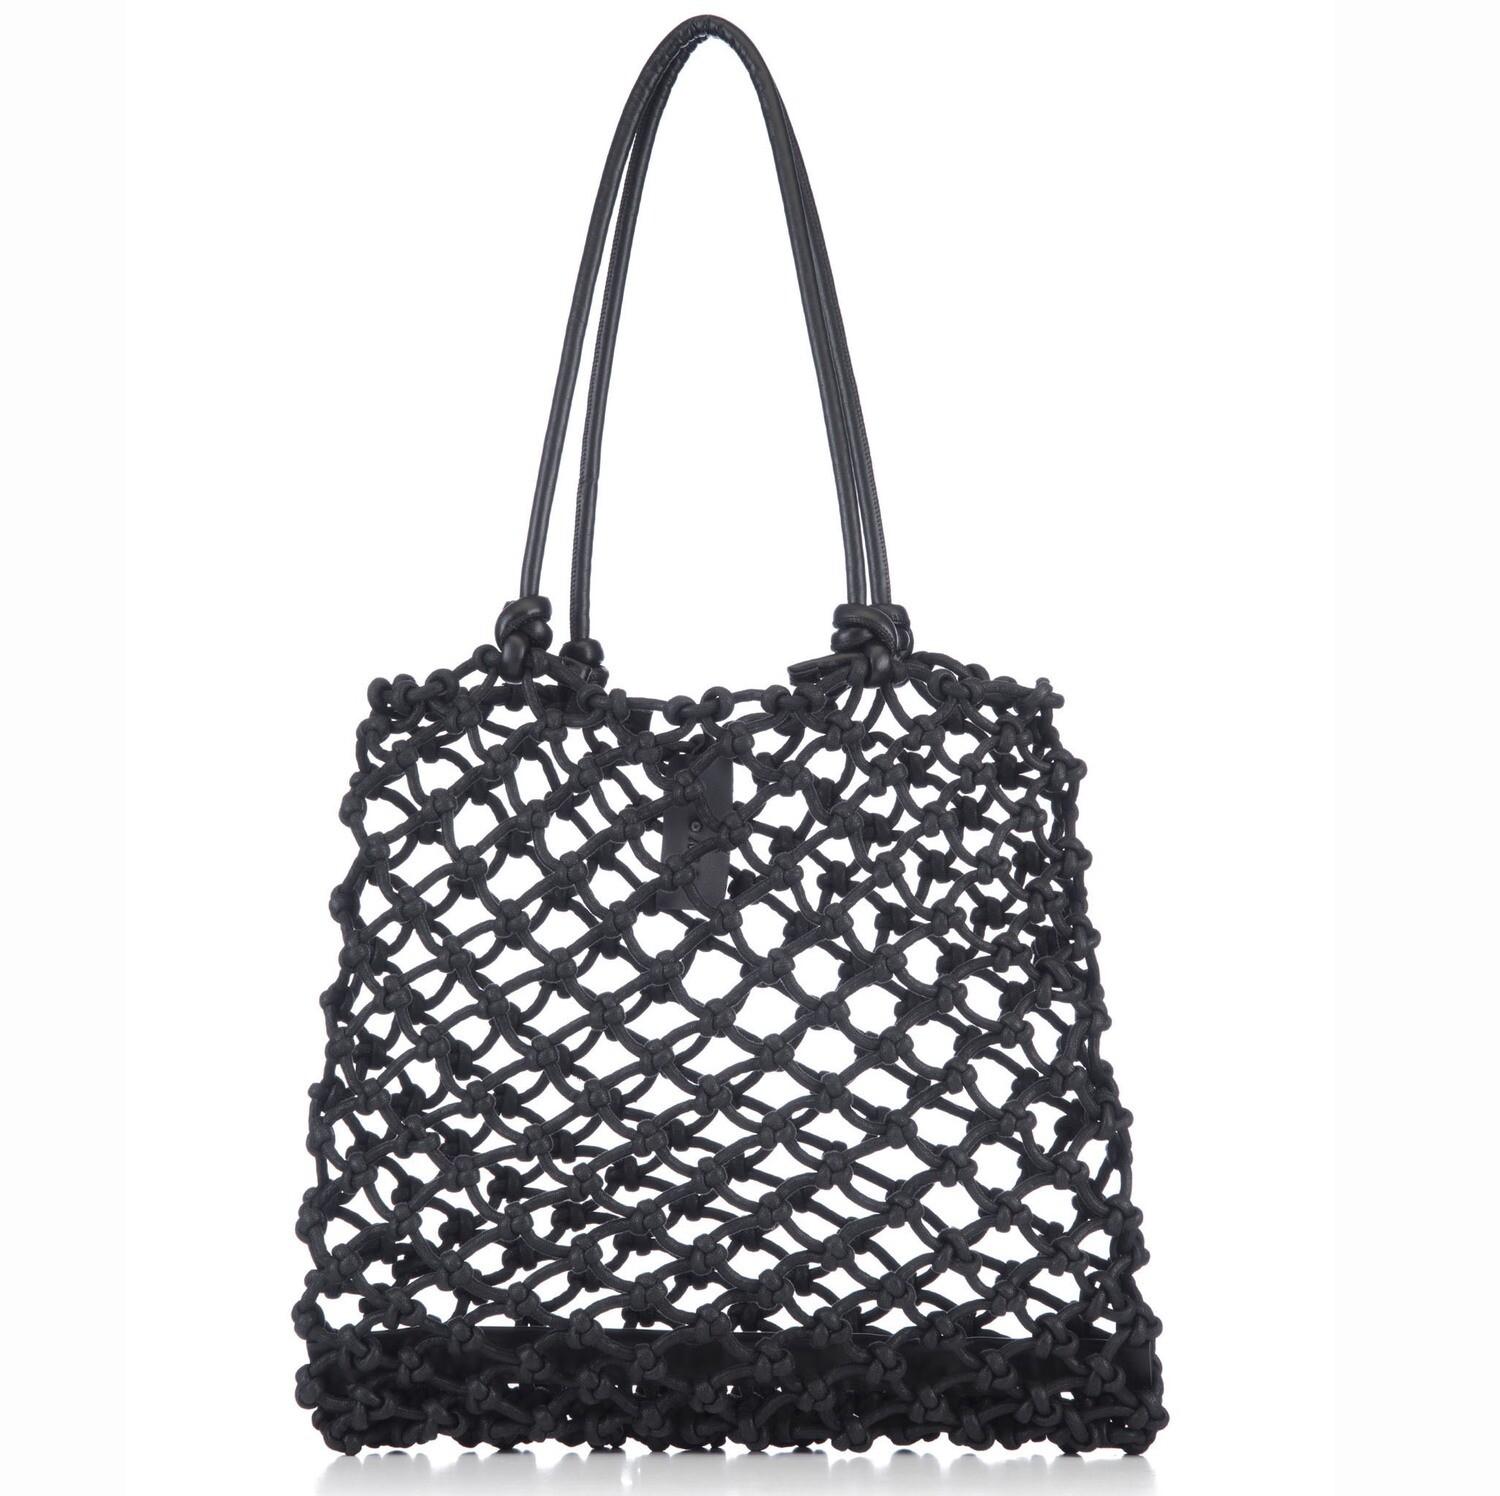 Knotted Tote in Black